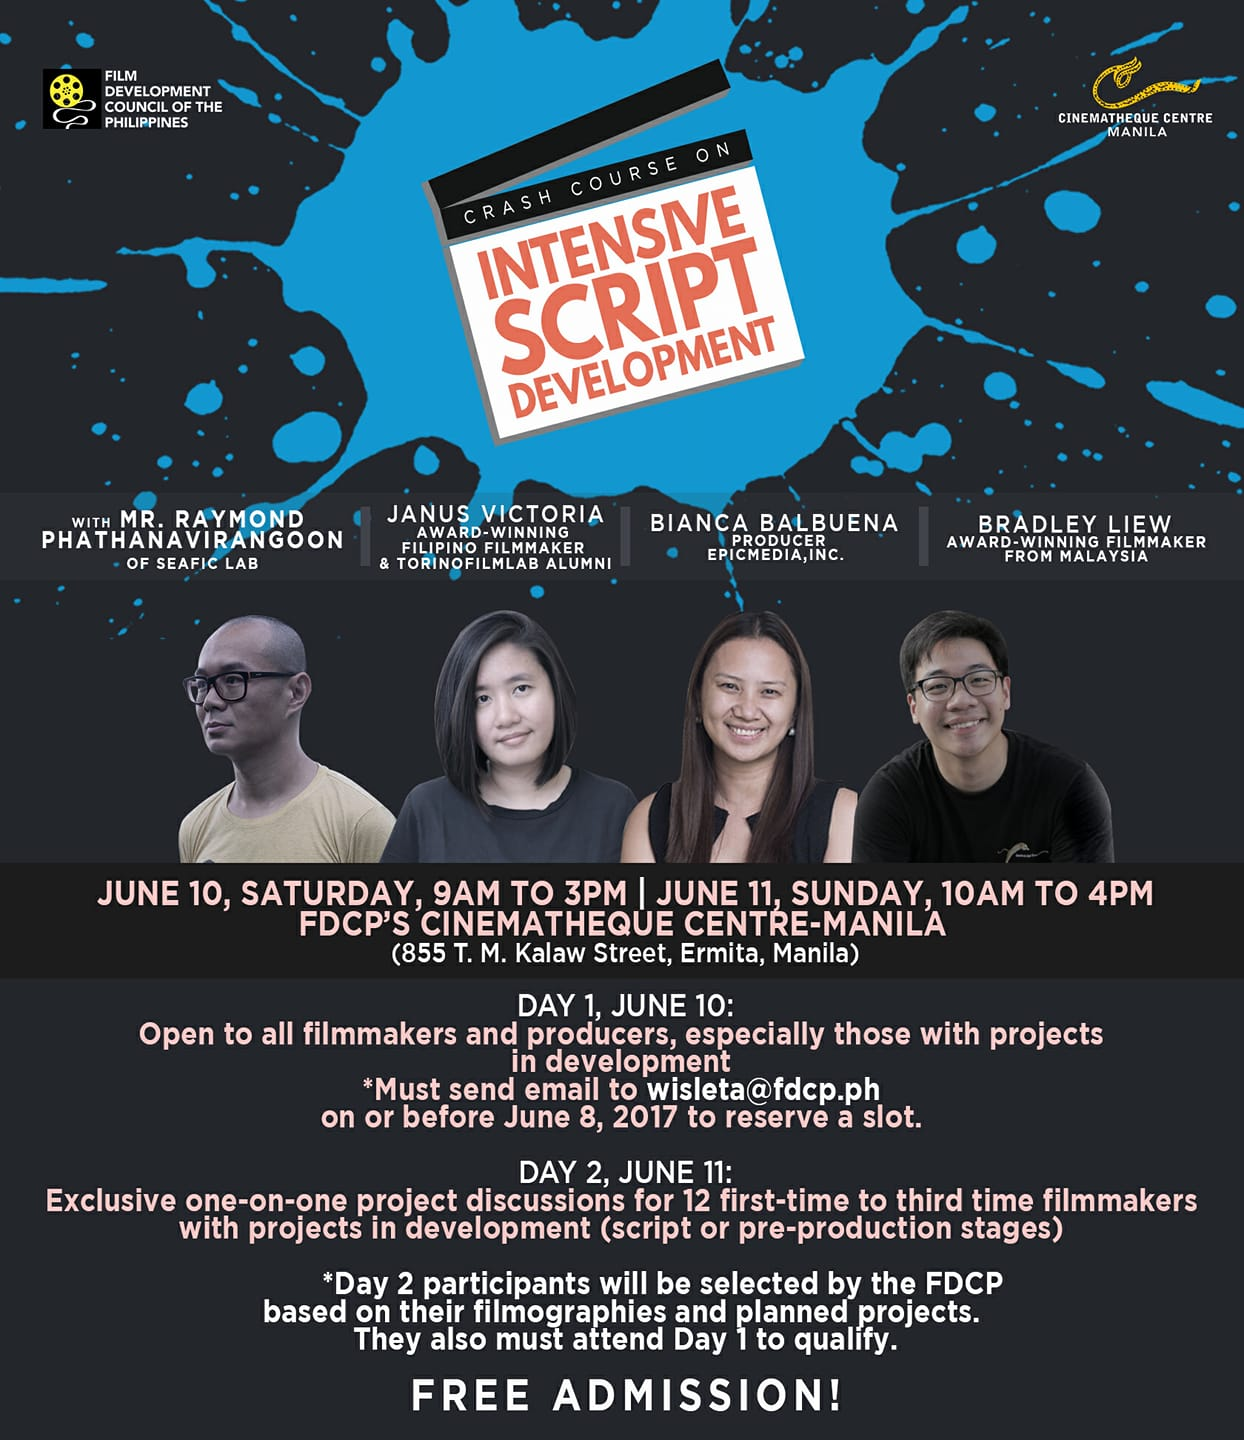 Film Development Council of the Philippines Page Liked · 15 hrs · Edited · ‼️Crash Course to Intensive Script Development‼️ 🔰Raymond Phathanavirangoon of Seafic Lab 🔰 Janus Victoria from Torino Film Lab 🔰Bianca Balbuena Producer, Epic Media Productions and 🔰Bradley Liew, Award-winning Filmmaker from Malaysia June 10, Saturday, 9am to 3pm June 11, Sunday, 10am to 4pm FDCP Cinematheque Manila 855 T.M. Kalaw Street, Ermita, Manila Day 1: Open to all filmmakers and producers, especially those with projects in development. Note: Participants must send email to wisleta@fdcp.ph on or before June 8, 2017 to reserve a slot. Day 2: Exclusive one-on-one project discussions for 12 first-time to third time filmmakers with projects in development (script or pre-production stages) Note: Day 2 participants will be selected by the FDCP based on their filmographies and planned projects. They also must attend Day 1 to qualify. ✅ FREE ADMISSION